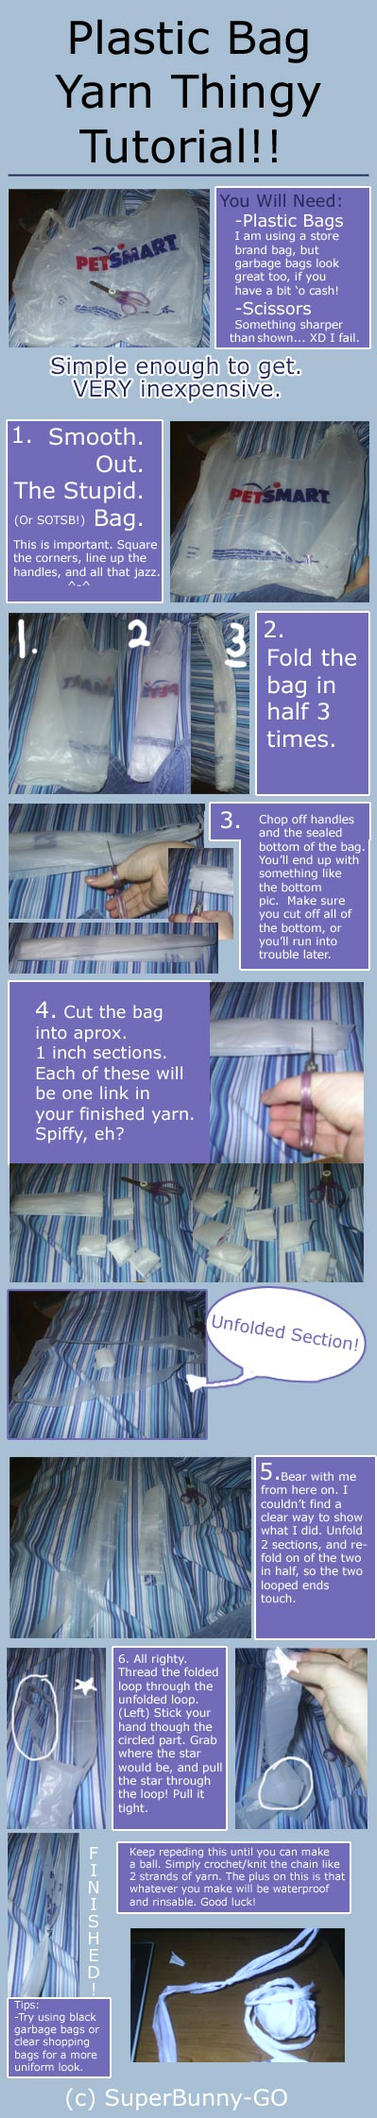 Grocery Bag Yarn Tutorial by SuperBunny-GO